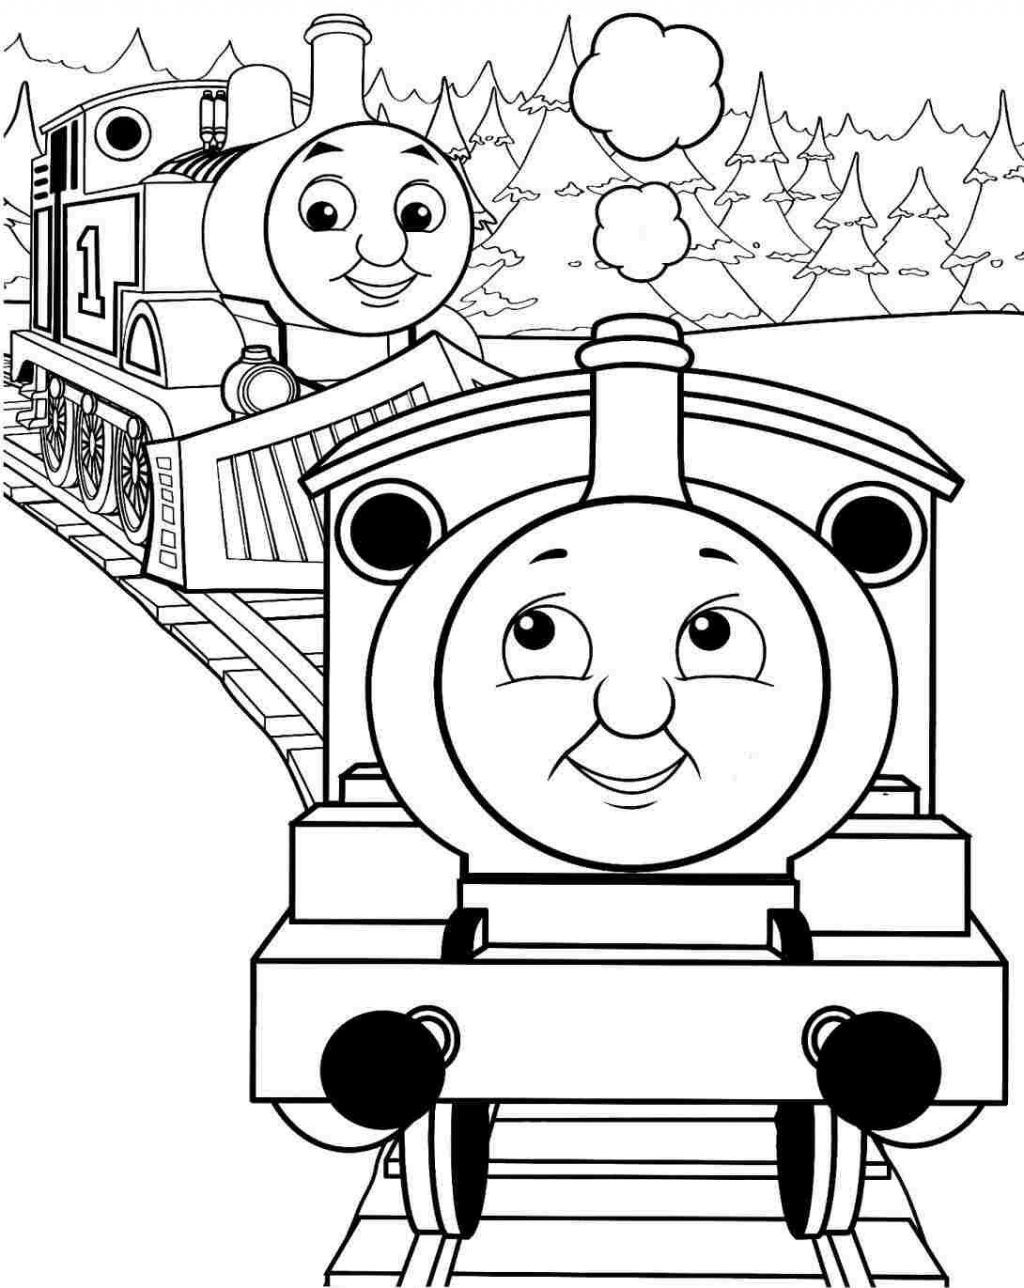 Coloring Pages ~ Simple Thomas The Train Coloring Pagesee Of